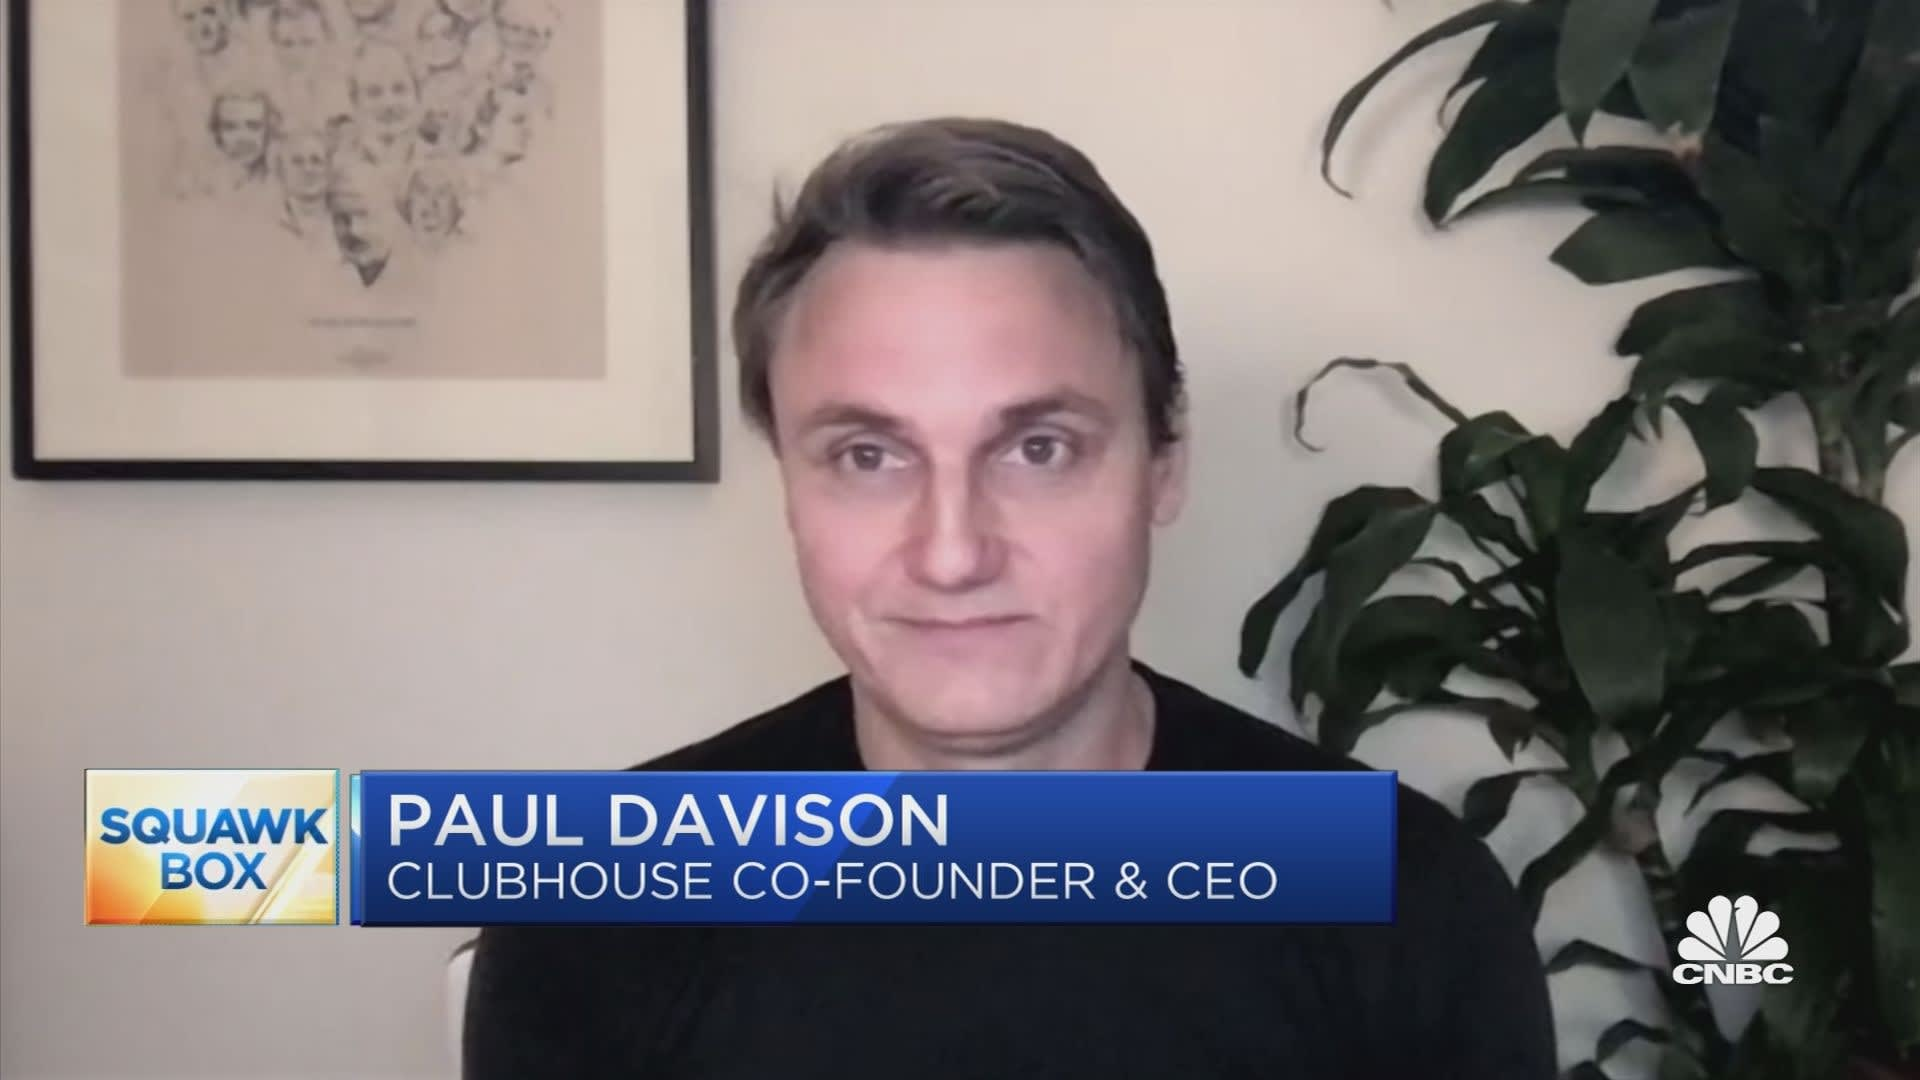 Clubhouse CEO Paul Davison on pandemic growth, monetization, outlook and more